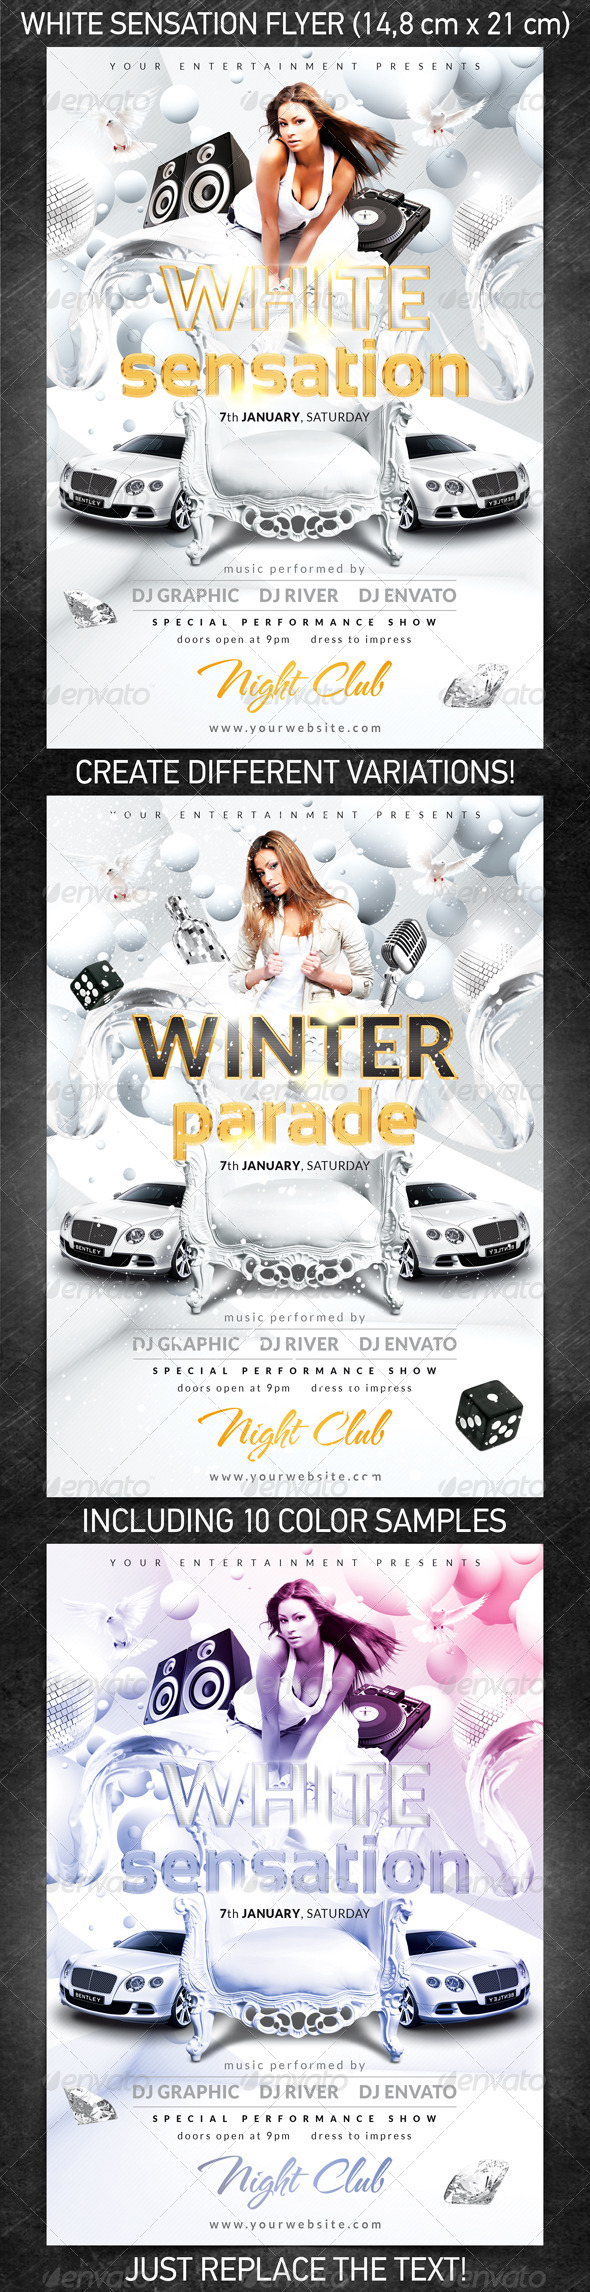 White Sensation Flyer - Clubs & Parties Events